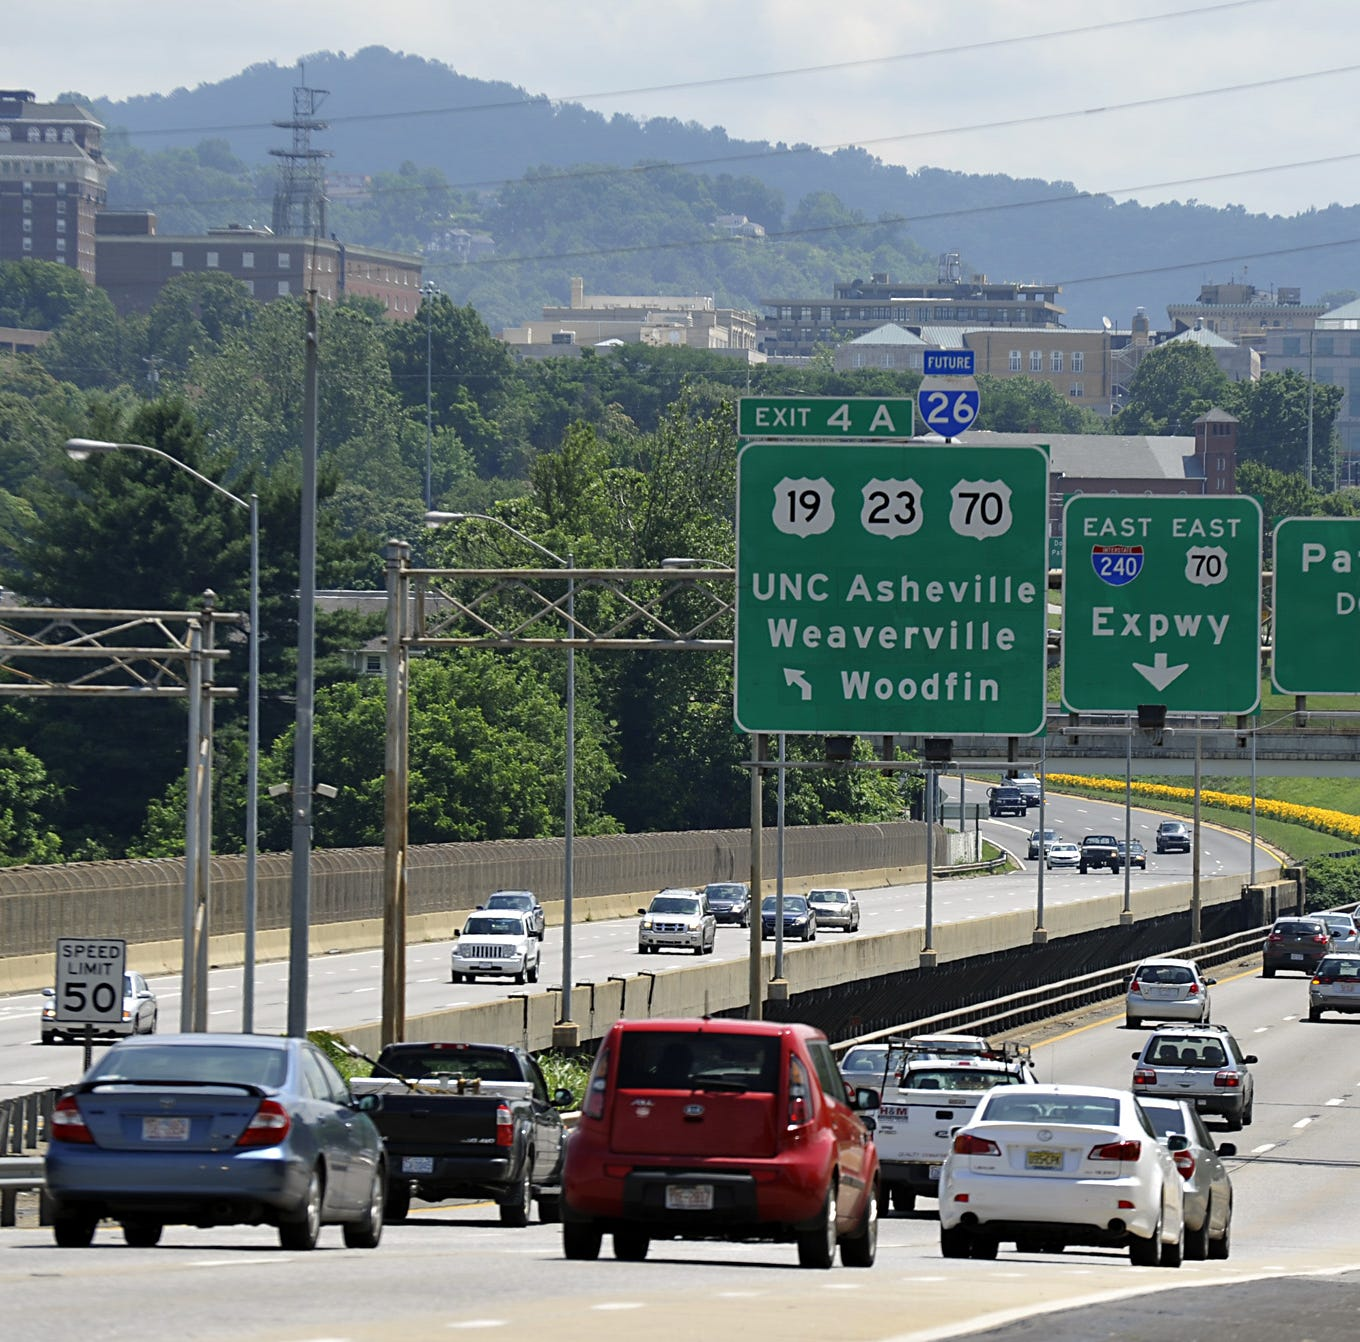 Does it really 'take an hour to get from Asheville to Asheville'?